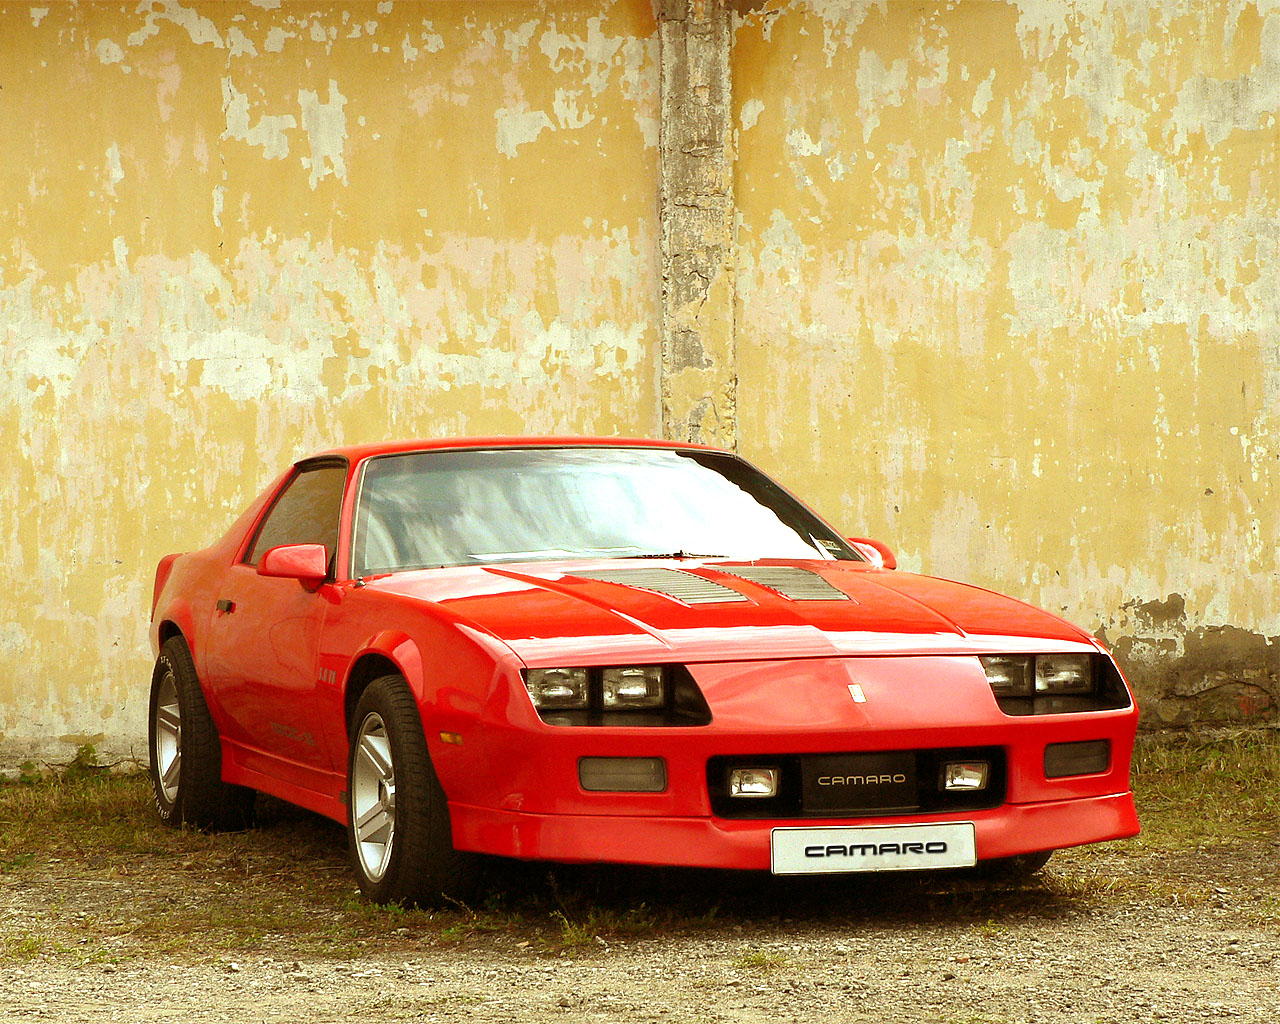 Image Result For Red Car For Sale Wallpaper